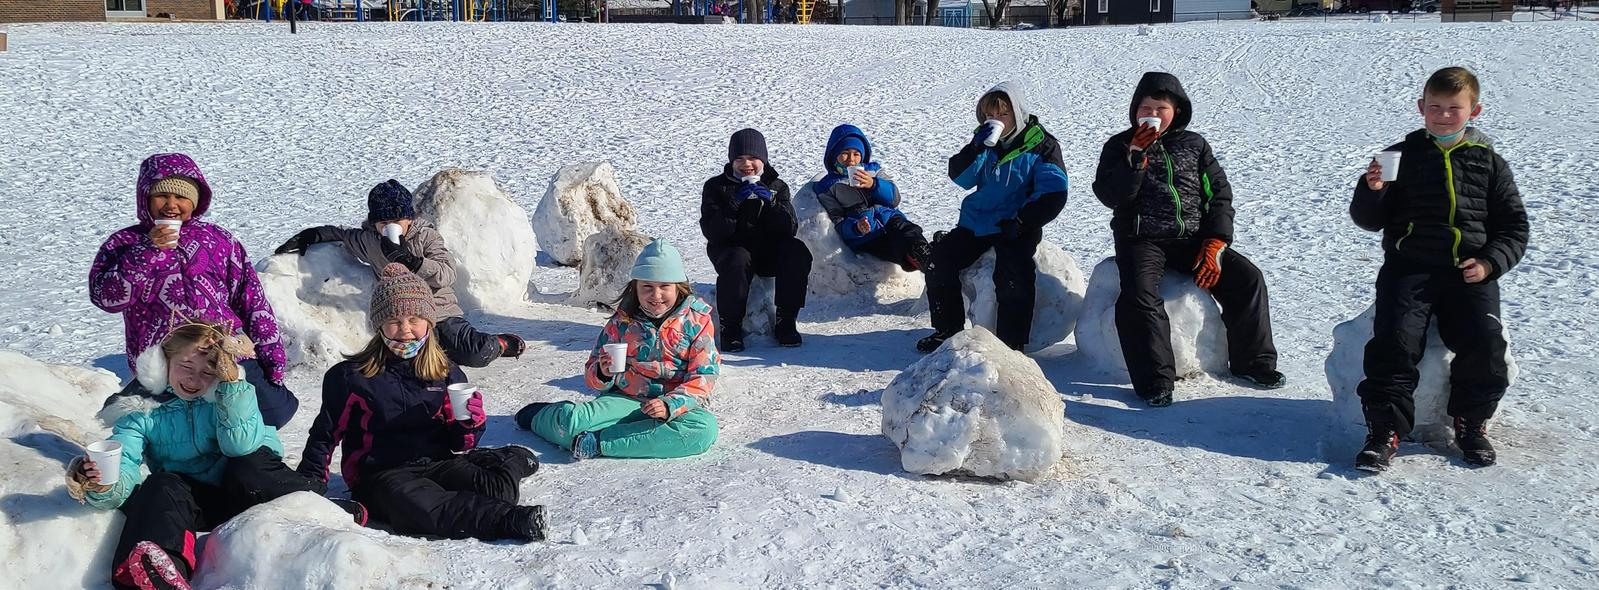 Kids outside at recess in the snow